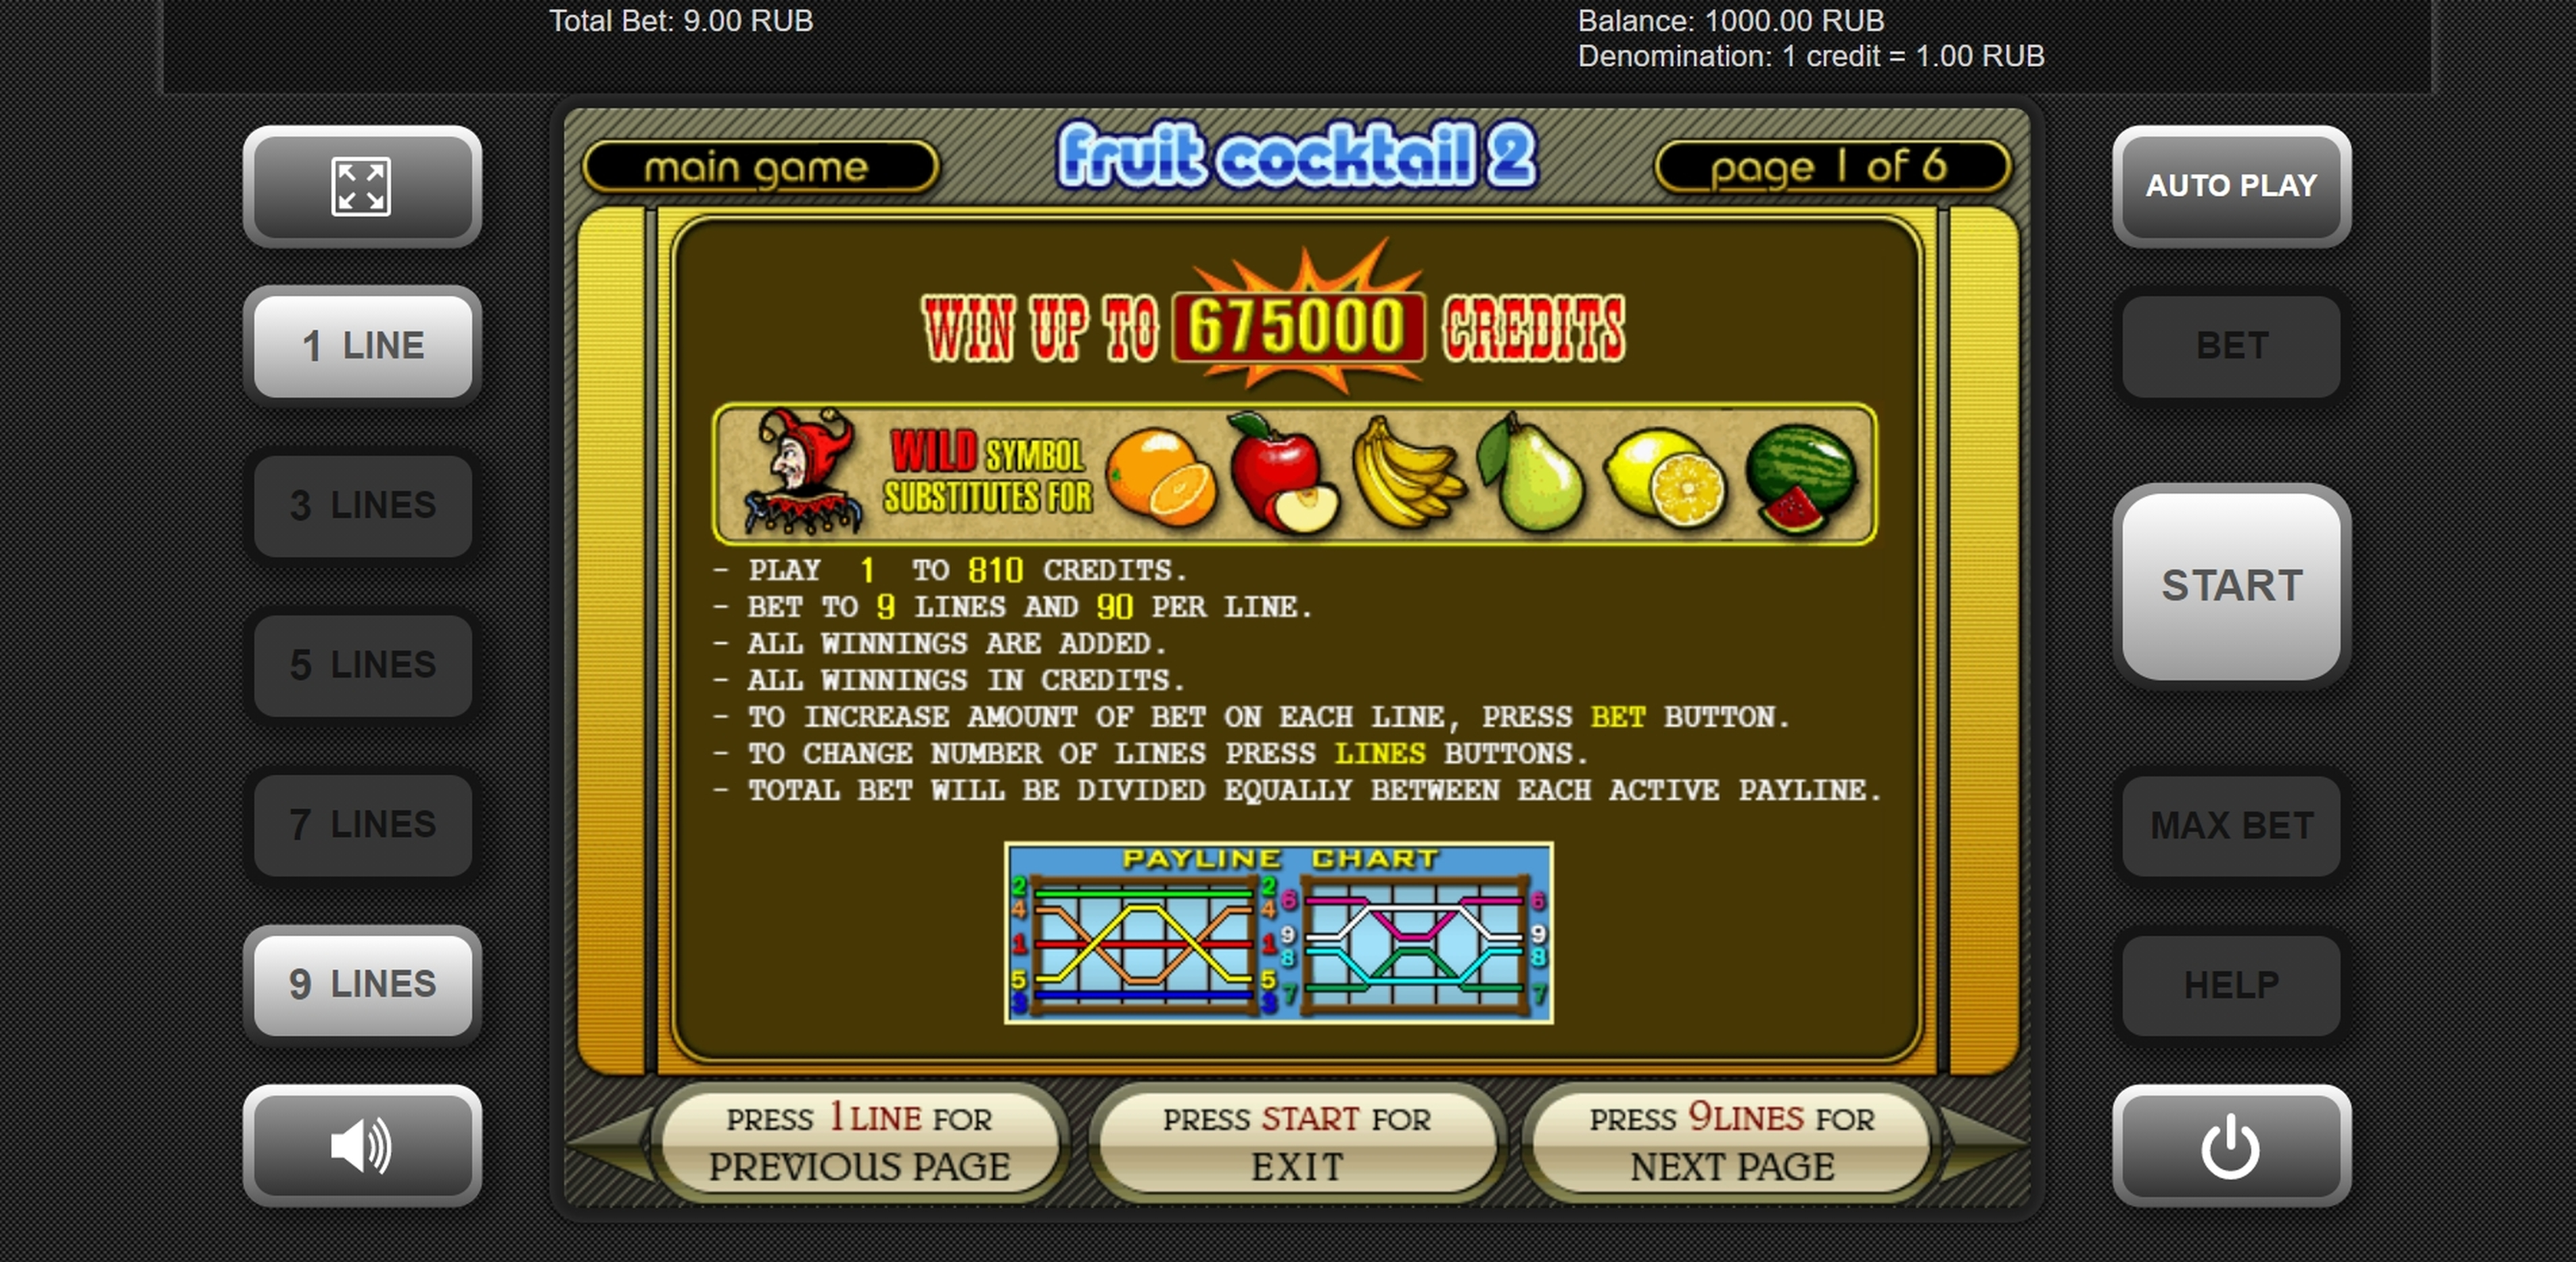 Info of Fruit Cocktail 2 Slot Game by Igrosoft